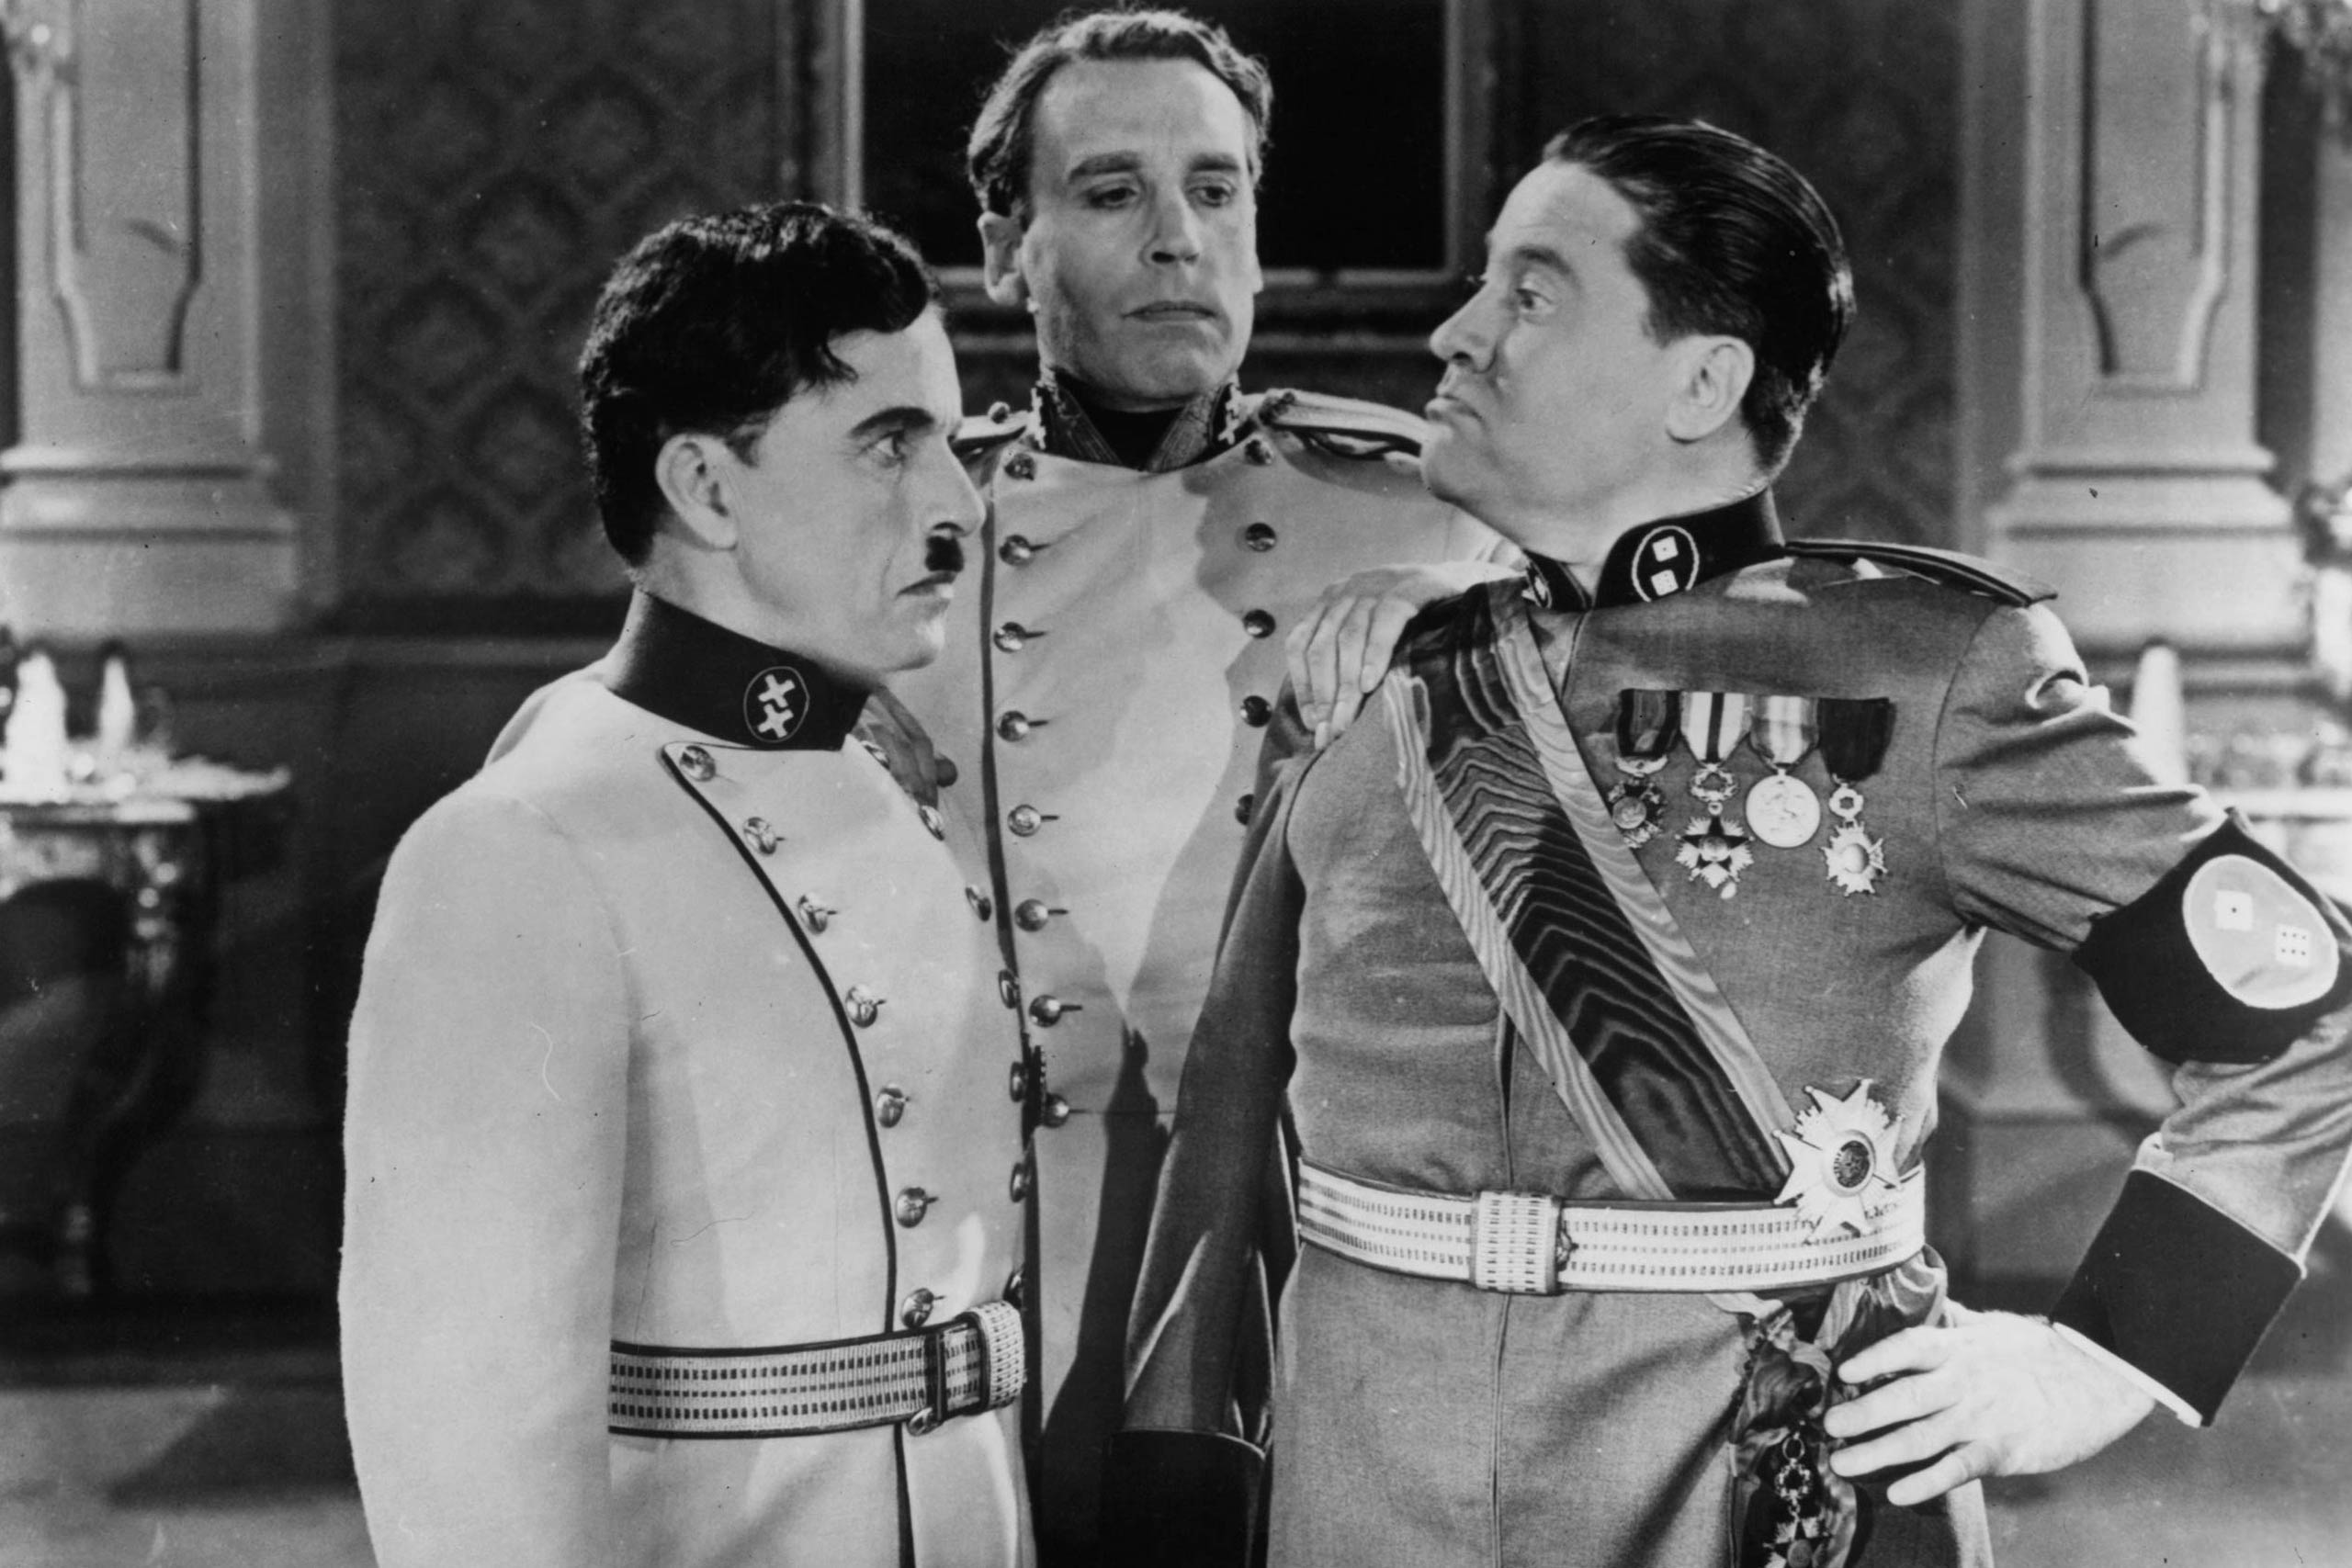 <strong><i>The Great Dictator</i>, 1940</strong> Charlie Chaplin's lampooning of Hitler came before the U.S. was necessarily ready to hear it -- the country hadn't yet entered World War II yet. <i>The Great Dictator</i> was controversial both for its advancement of anti-Hitler rhetoric and, at the same time, its turning Hitler into a figure of comedy.